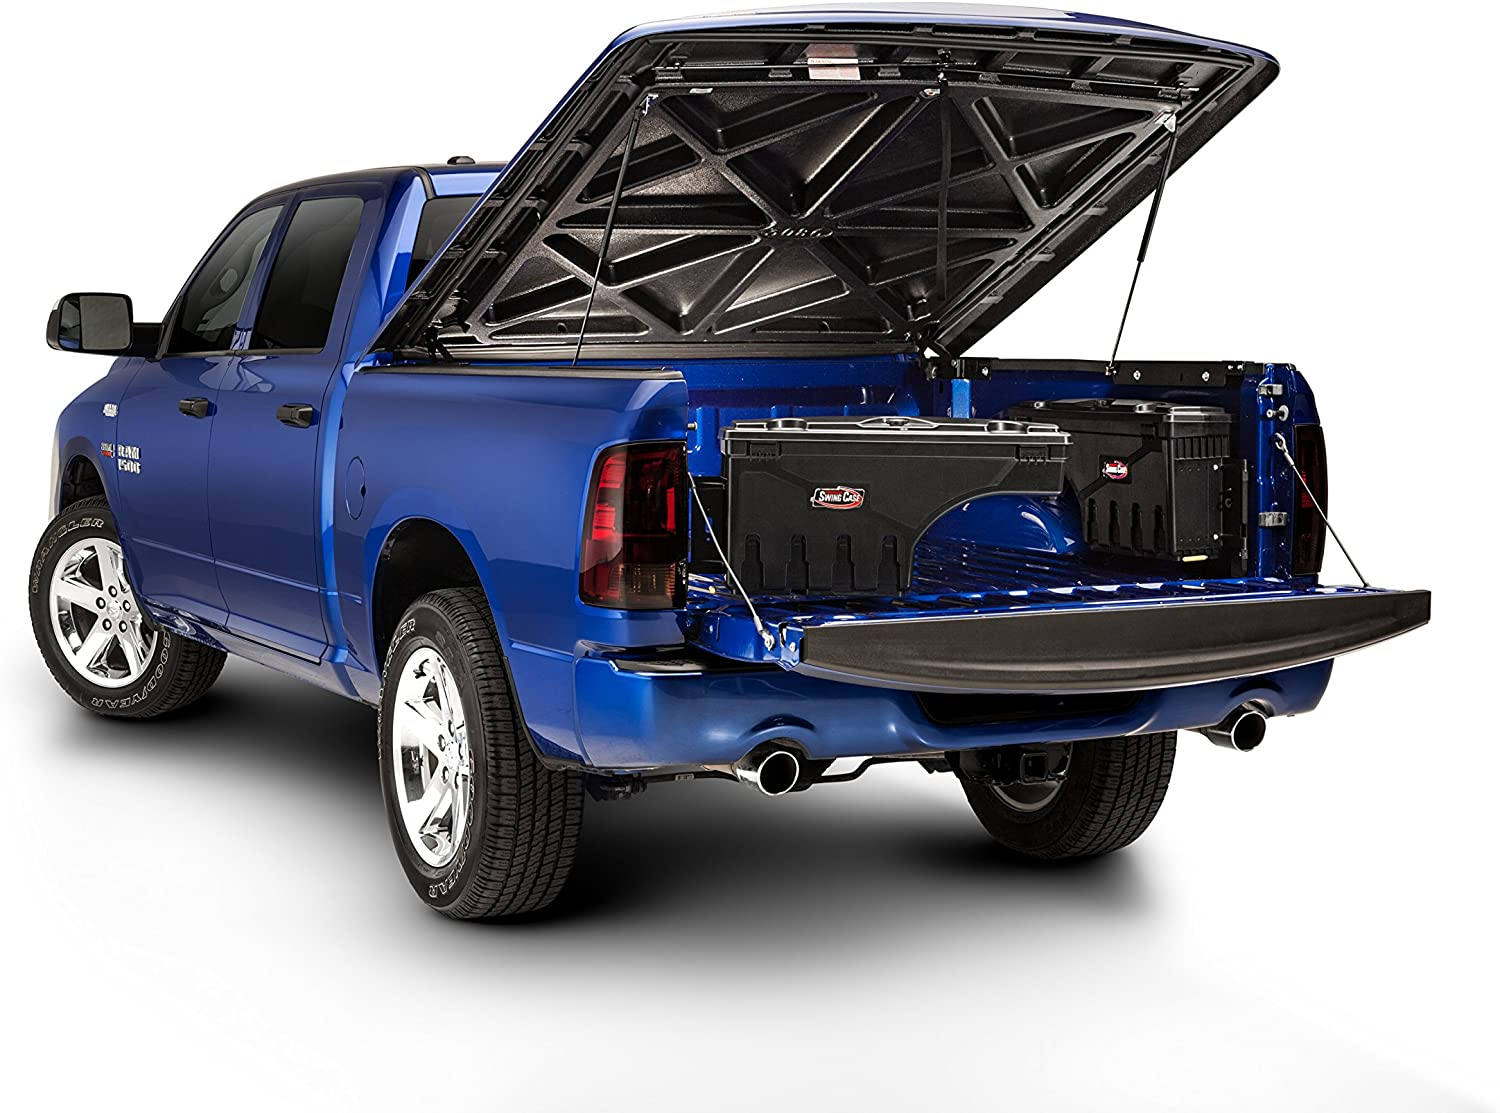 Undercover Swing Case mounted on a Dodge Ram model years 2002 to 2018